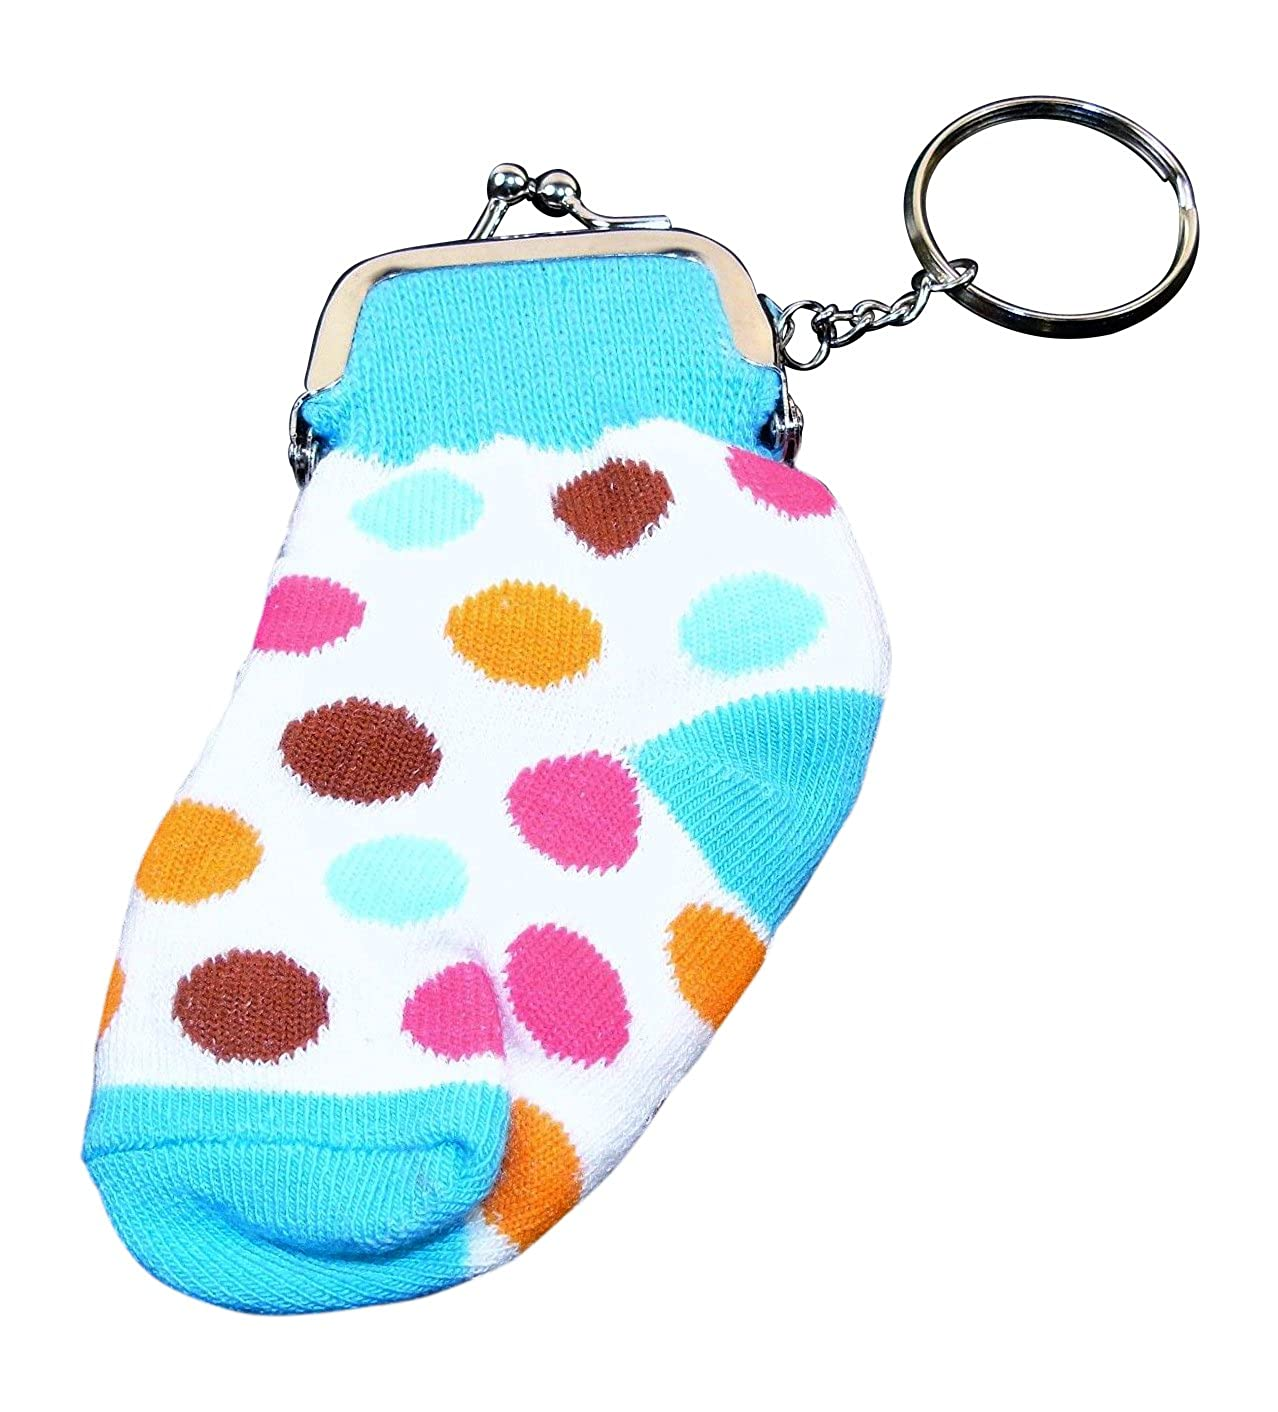 Knit Sock Coin Purse with Snap Closure and Monogram Initial.